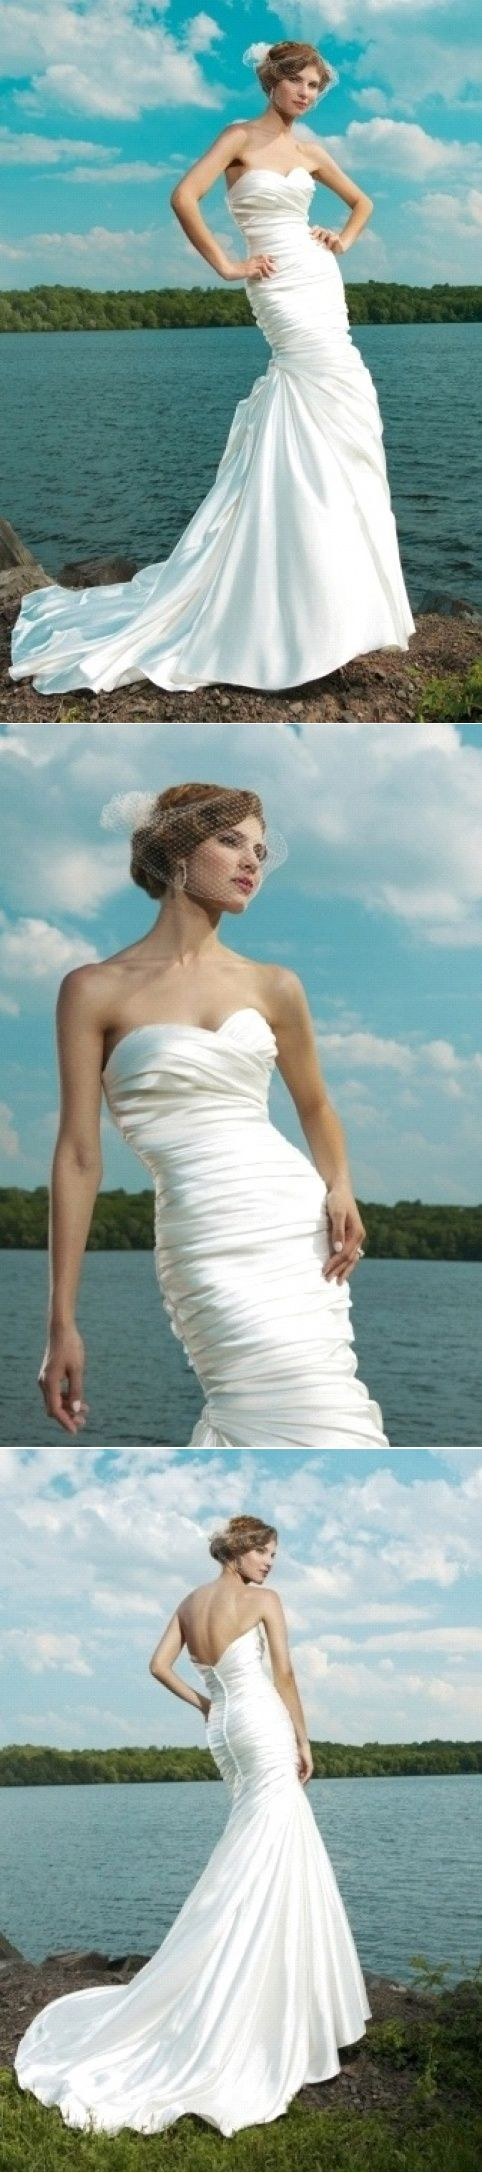 Red And Black Wedding Gown Wedding Courthouse Wedding Gowns ...